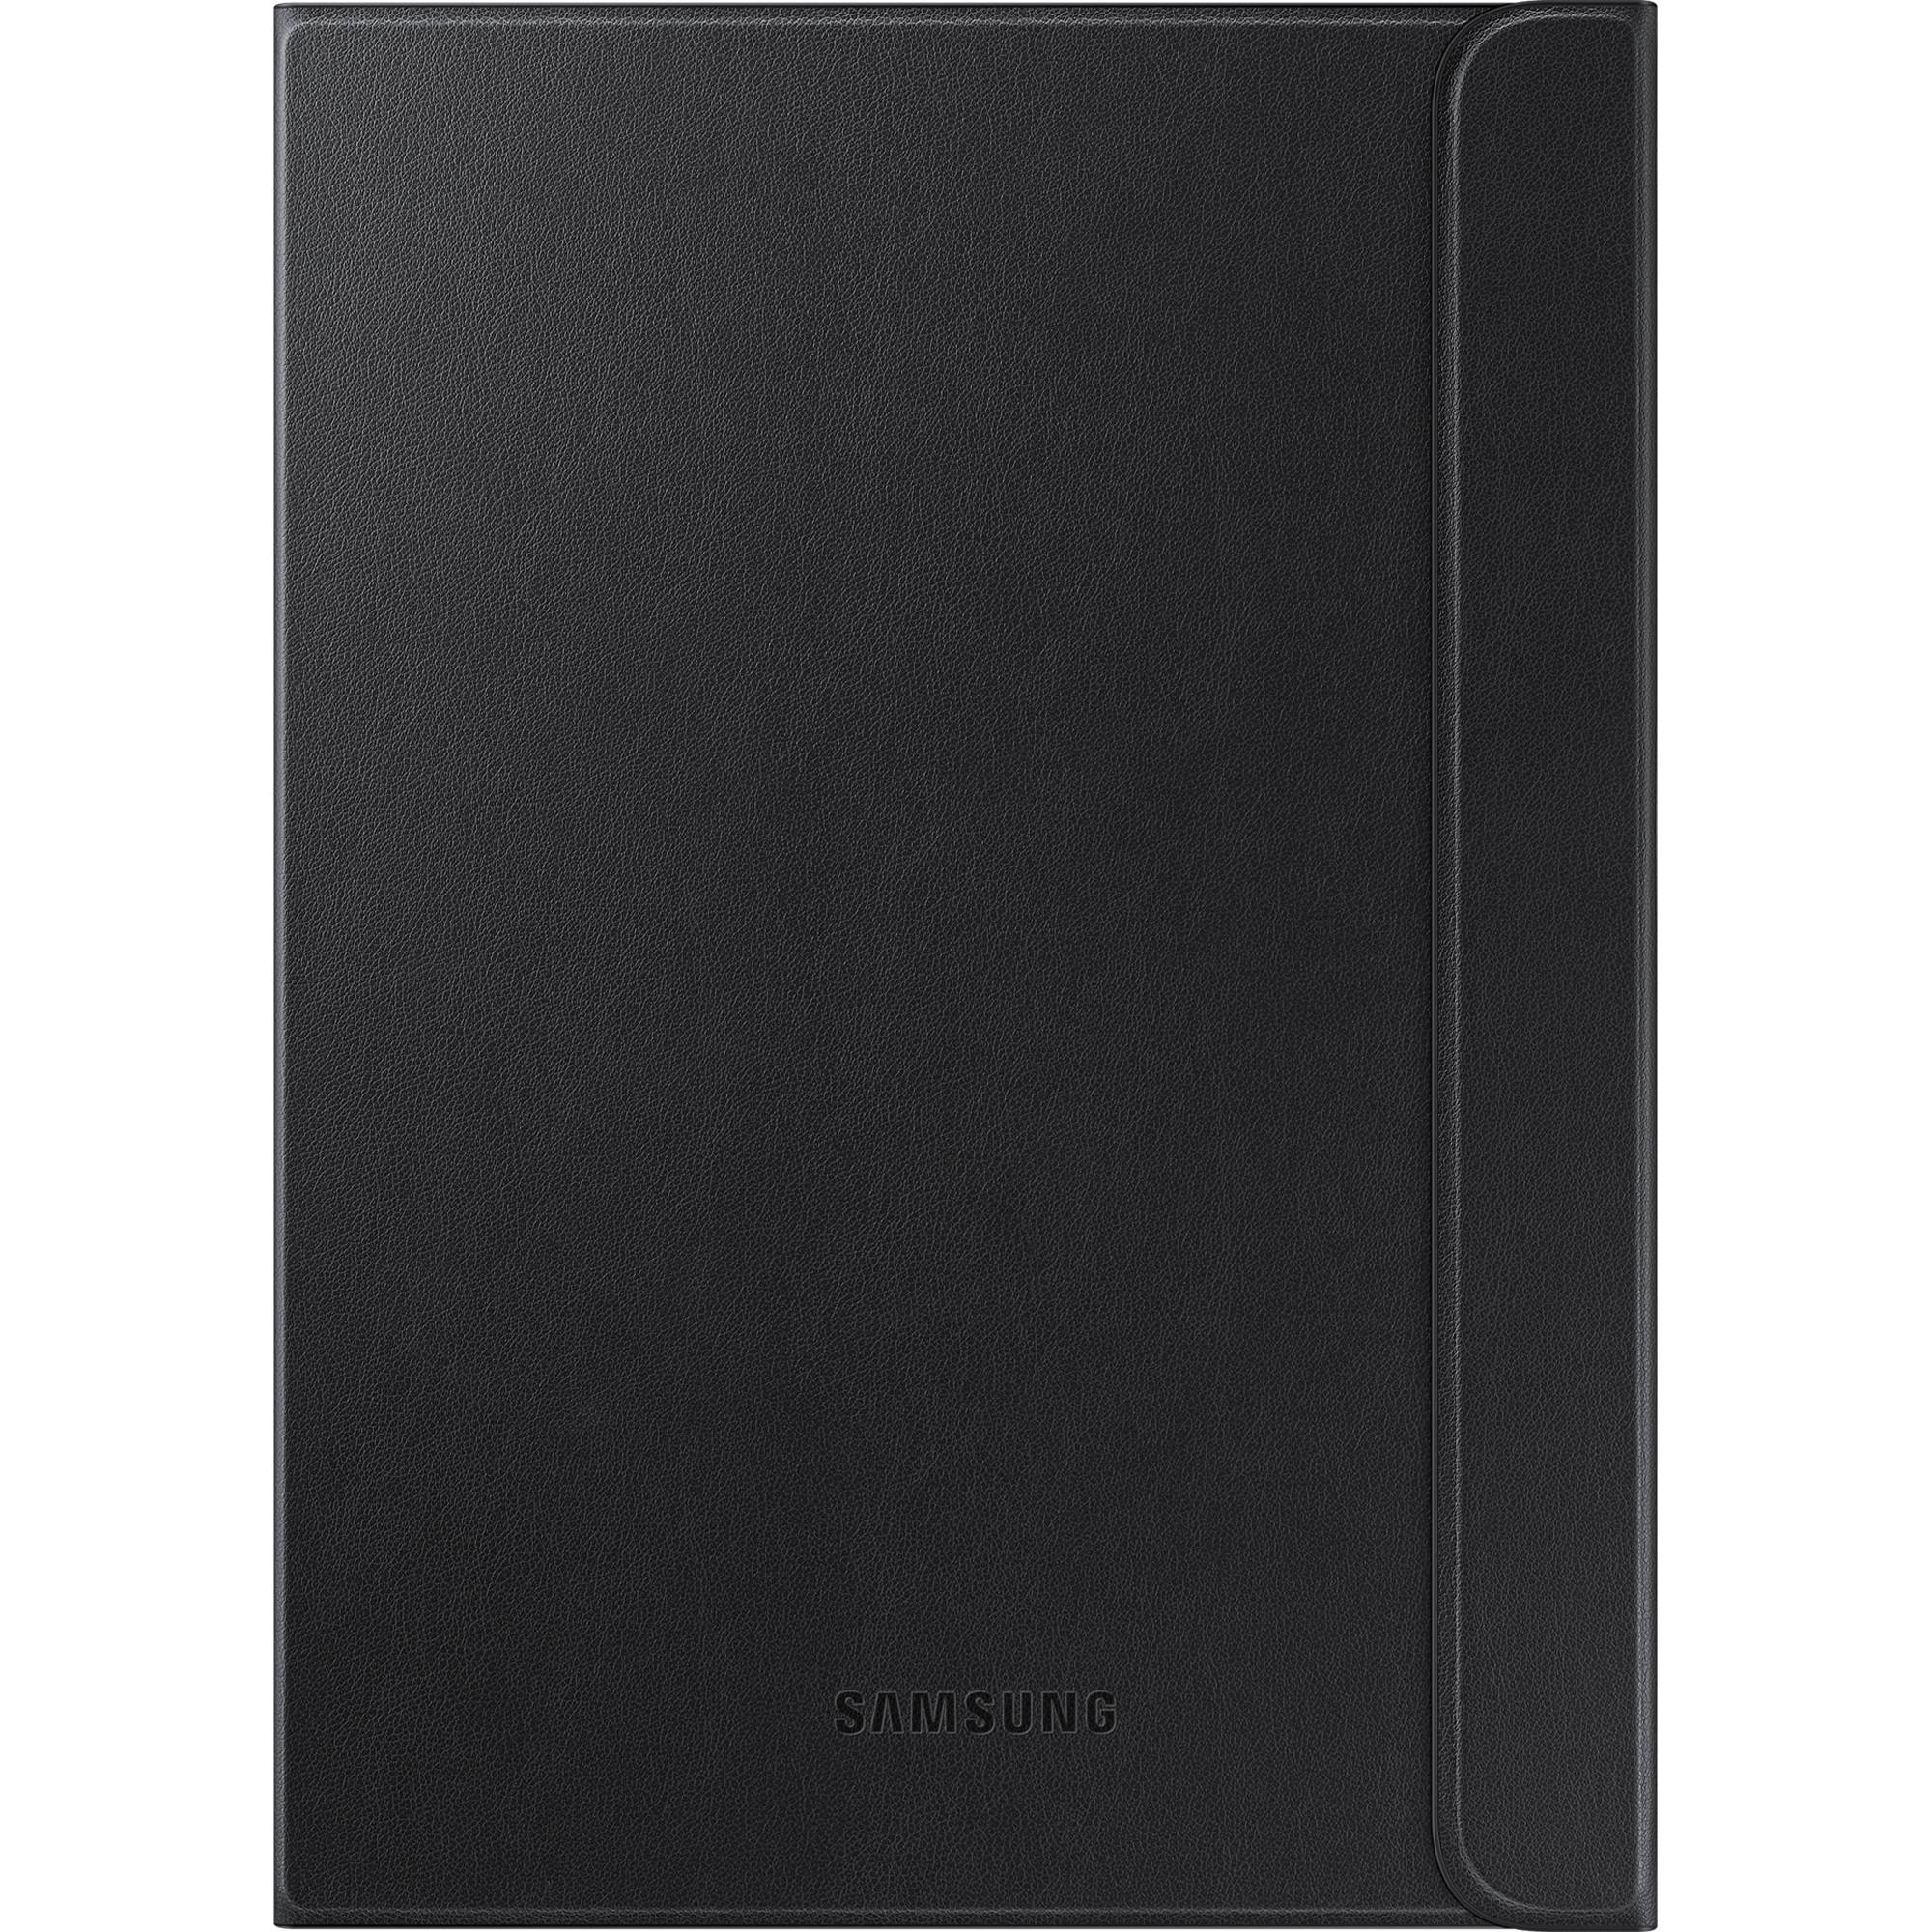 Samsung Galaxy Tab S2 9.7 Book Cover (Black) EF-BT810PBEGUJ B&H